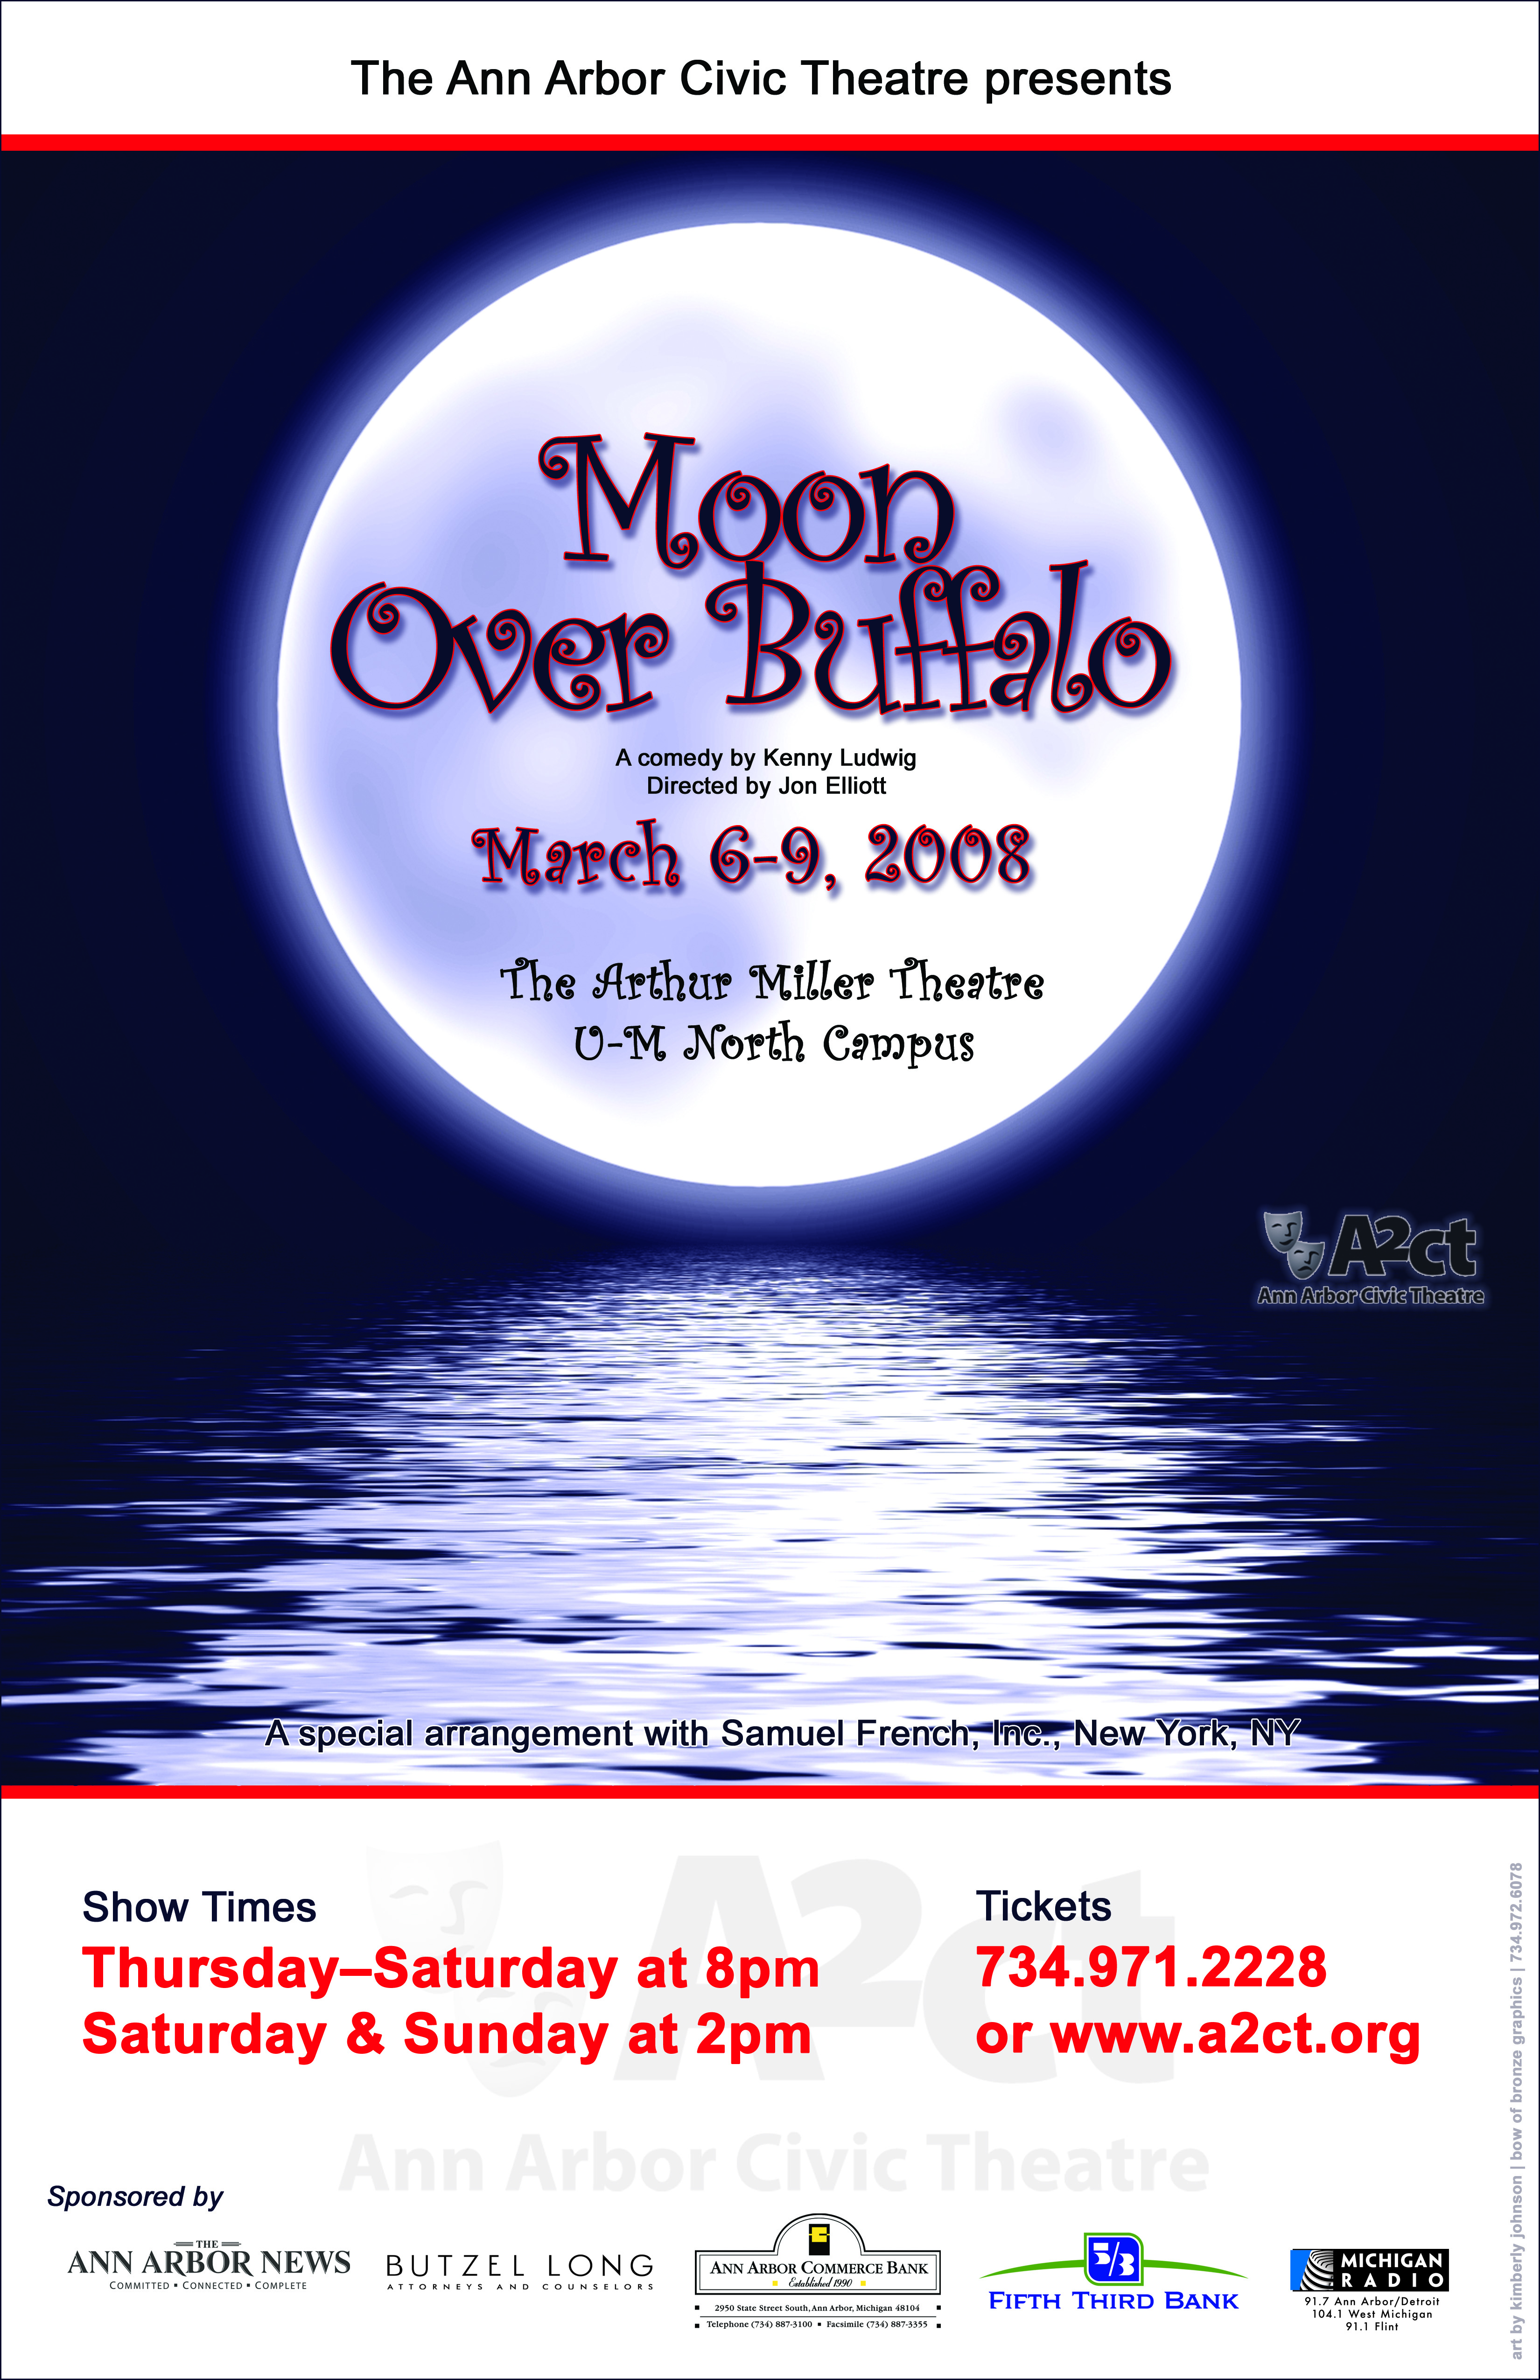 Ann Arbor Civic Theatre Poster: Moon Over Buffalo image